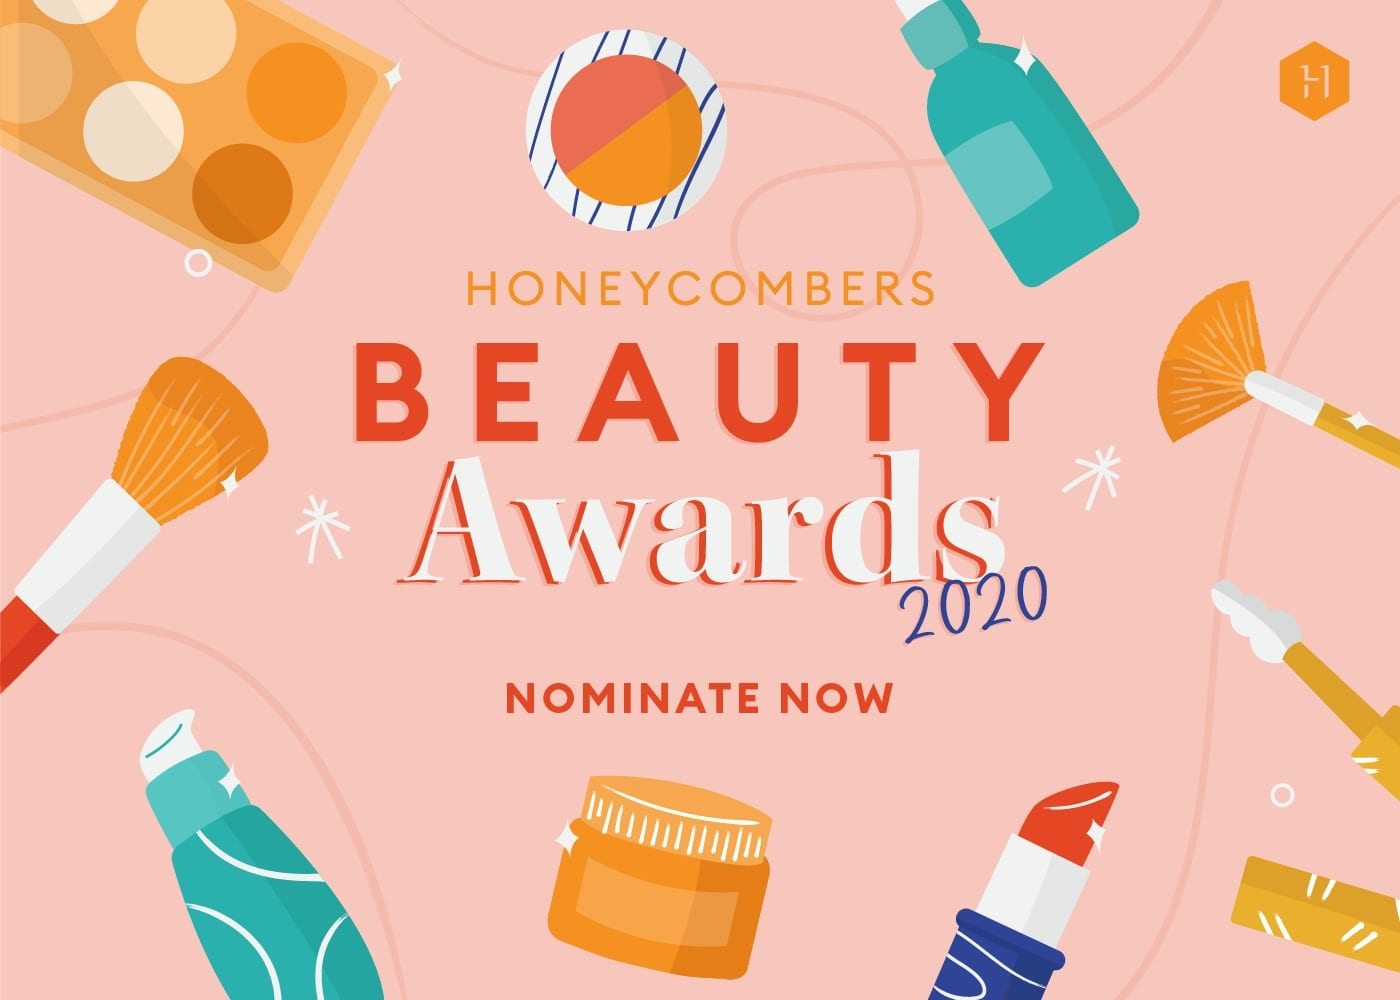 Honeycombers Beauty Awards 2020 Nomination